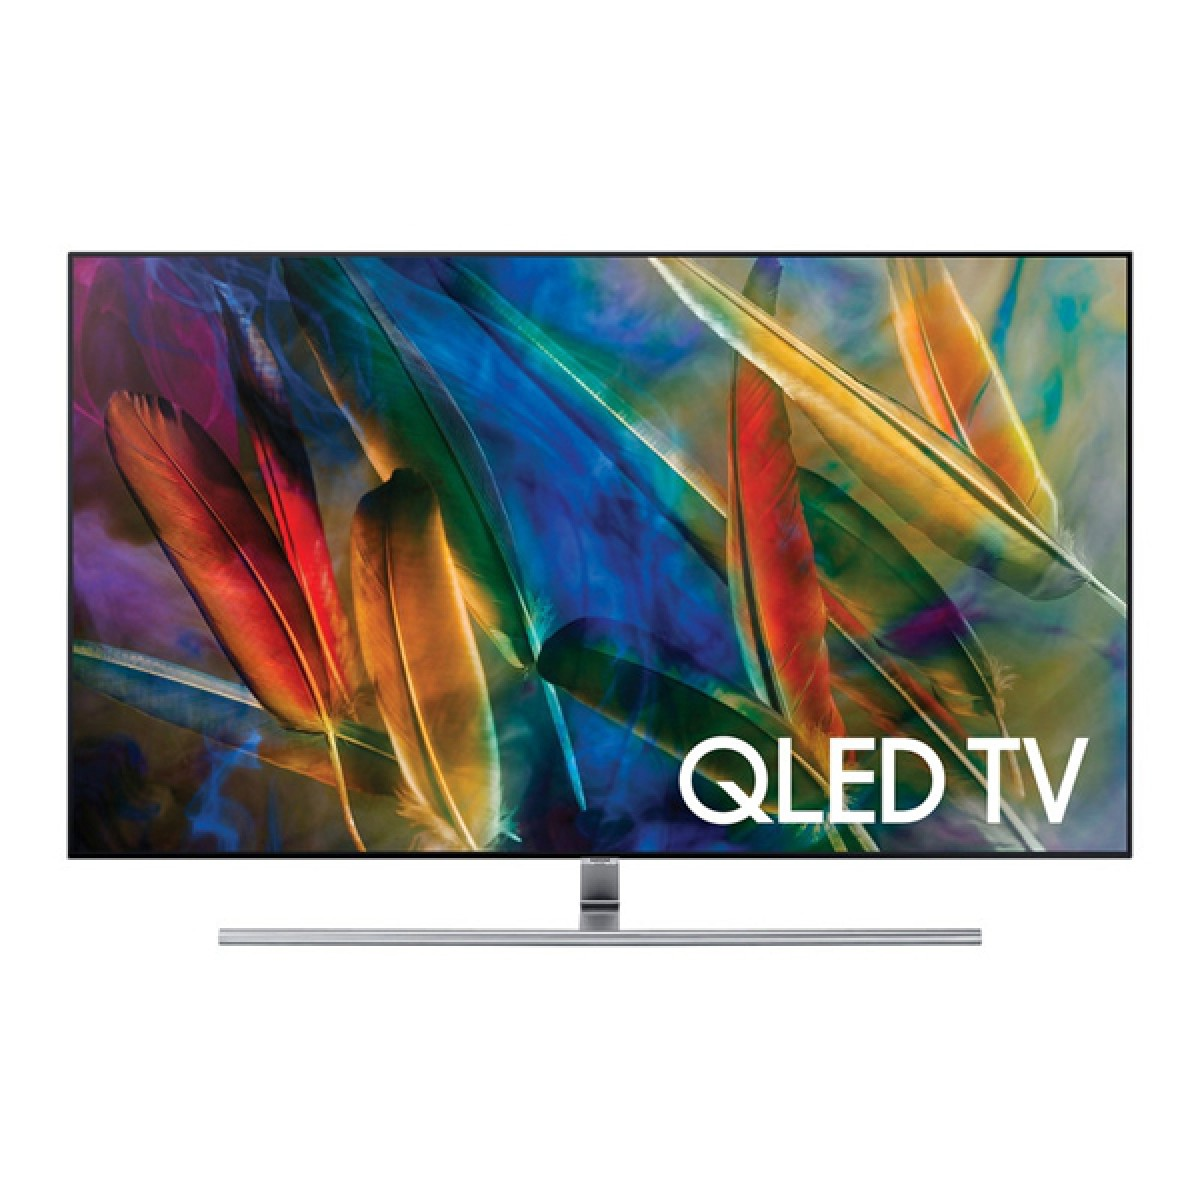 9ae99637536 Samsung LED TV Price in Pakistan - Updated May 2019 Price List